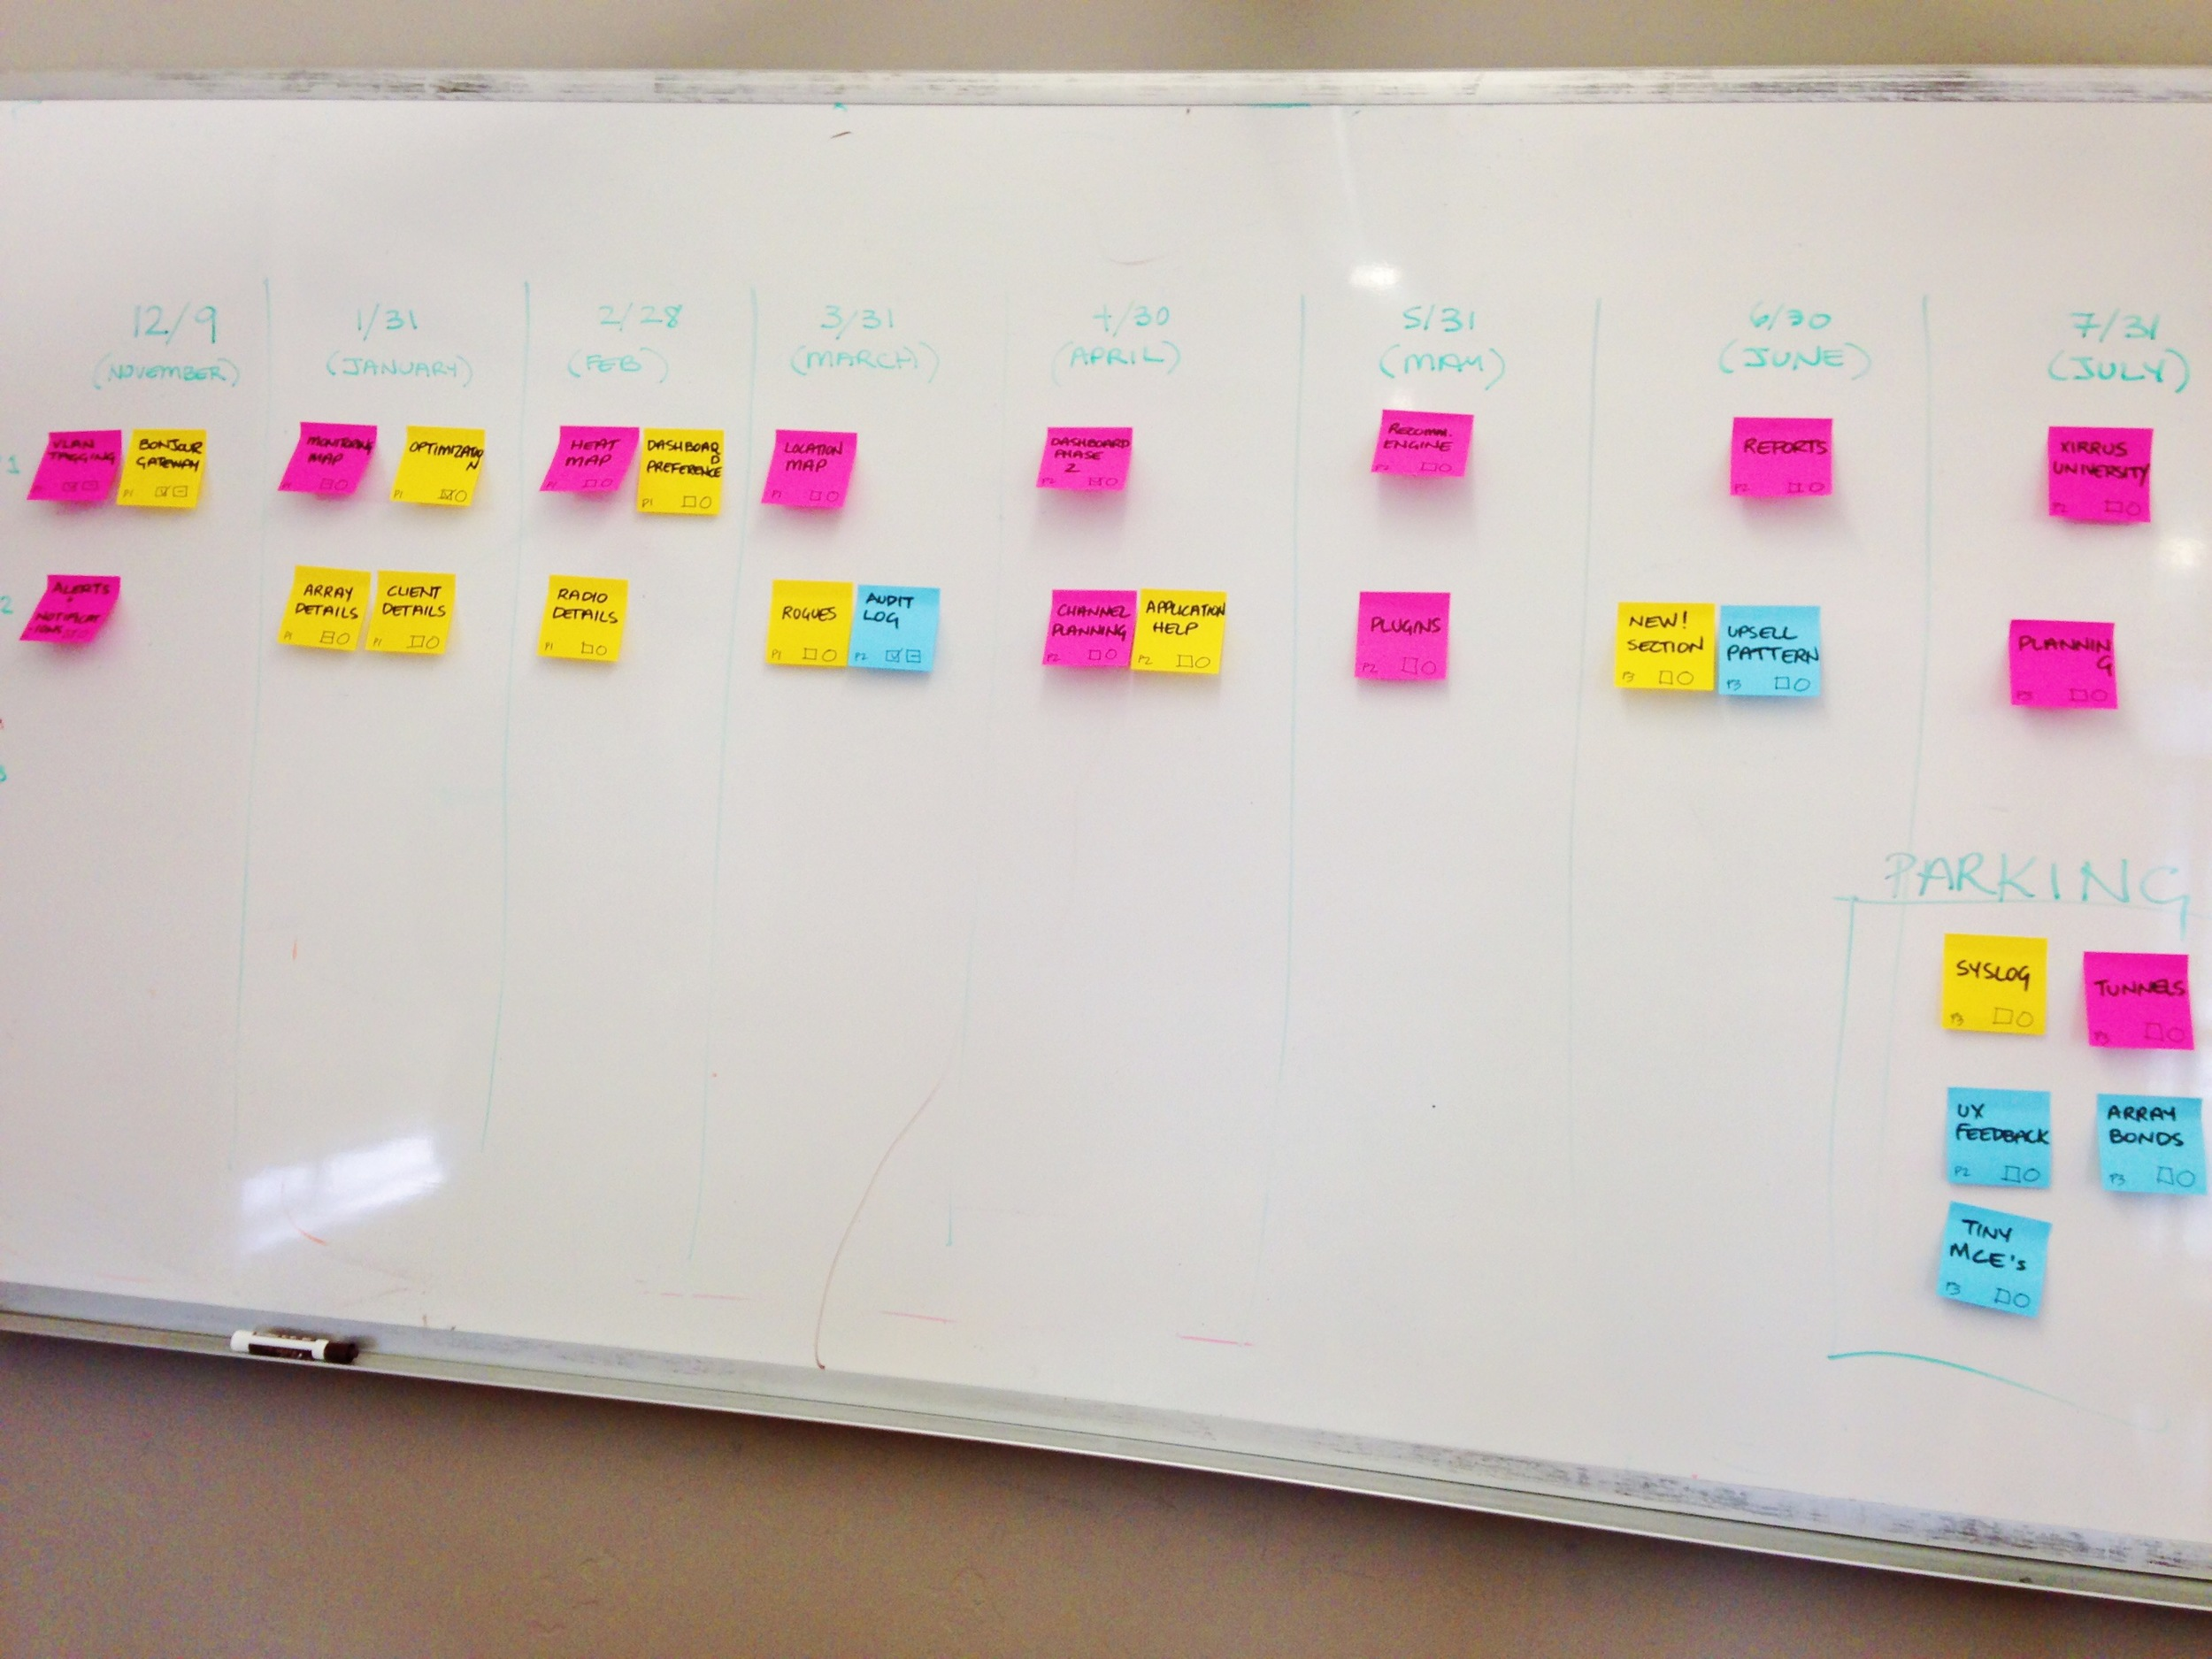 Colourful post it notes on whiteboard.